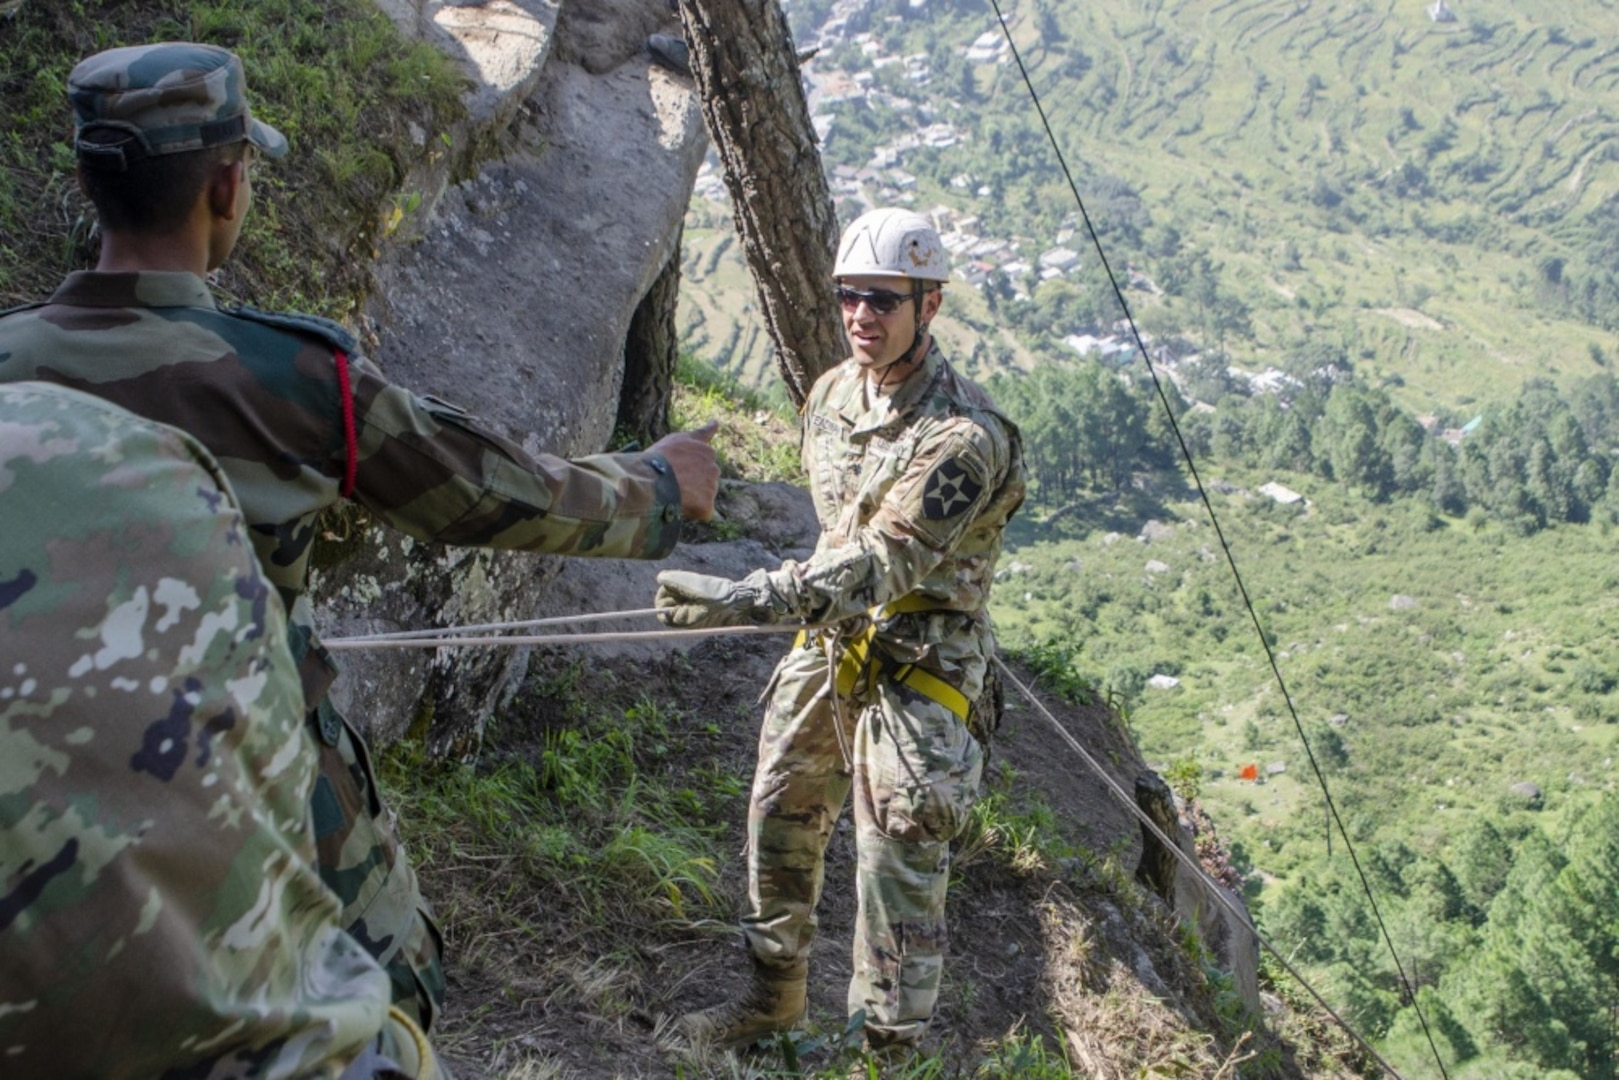 Bayonet Soldiers hone mountaineering skills in India